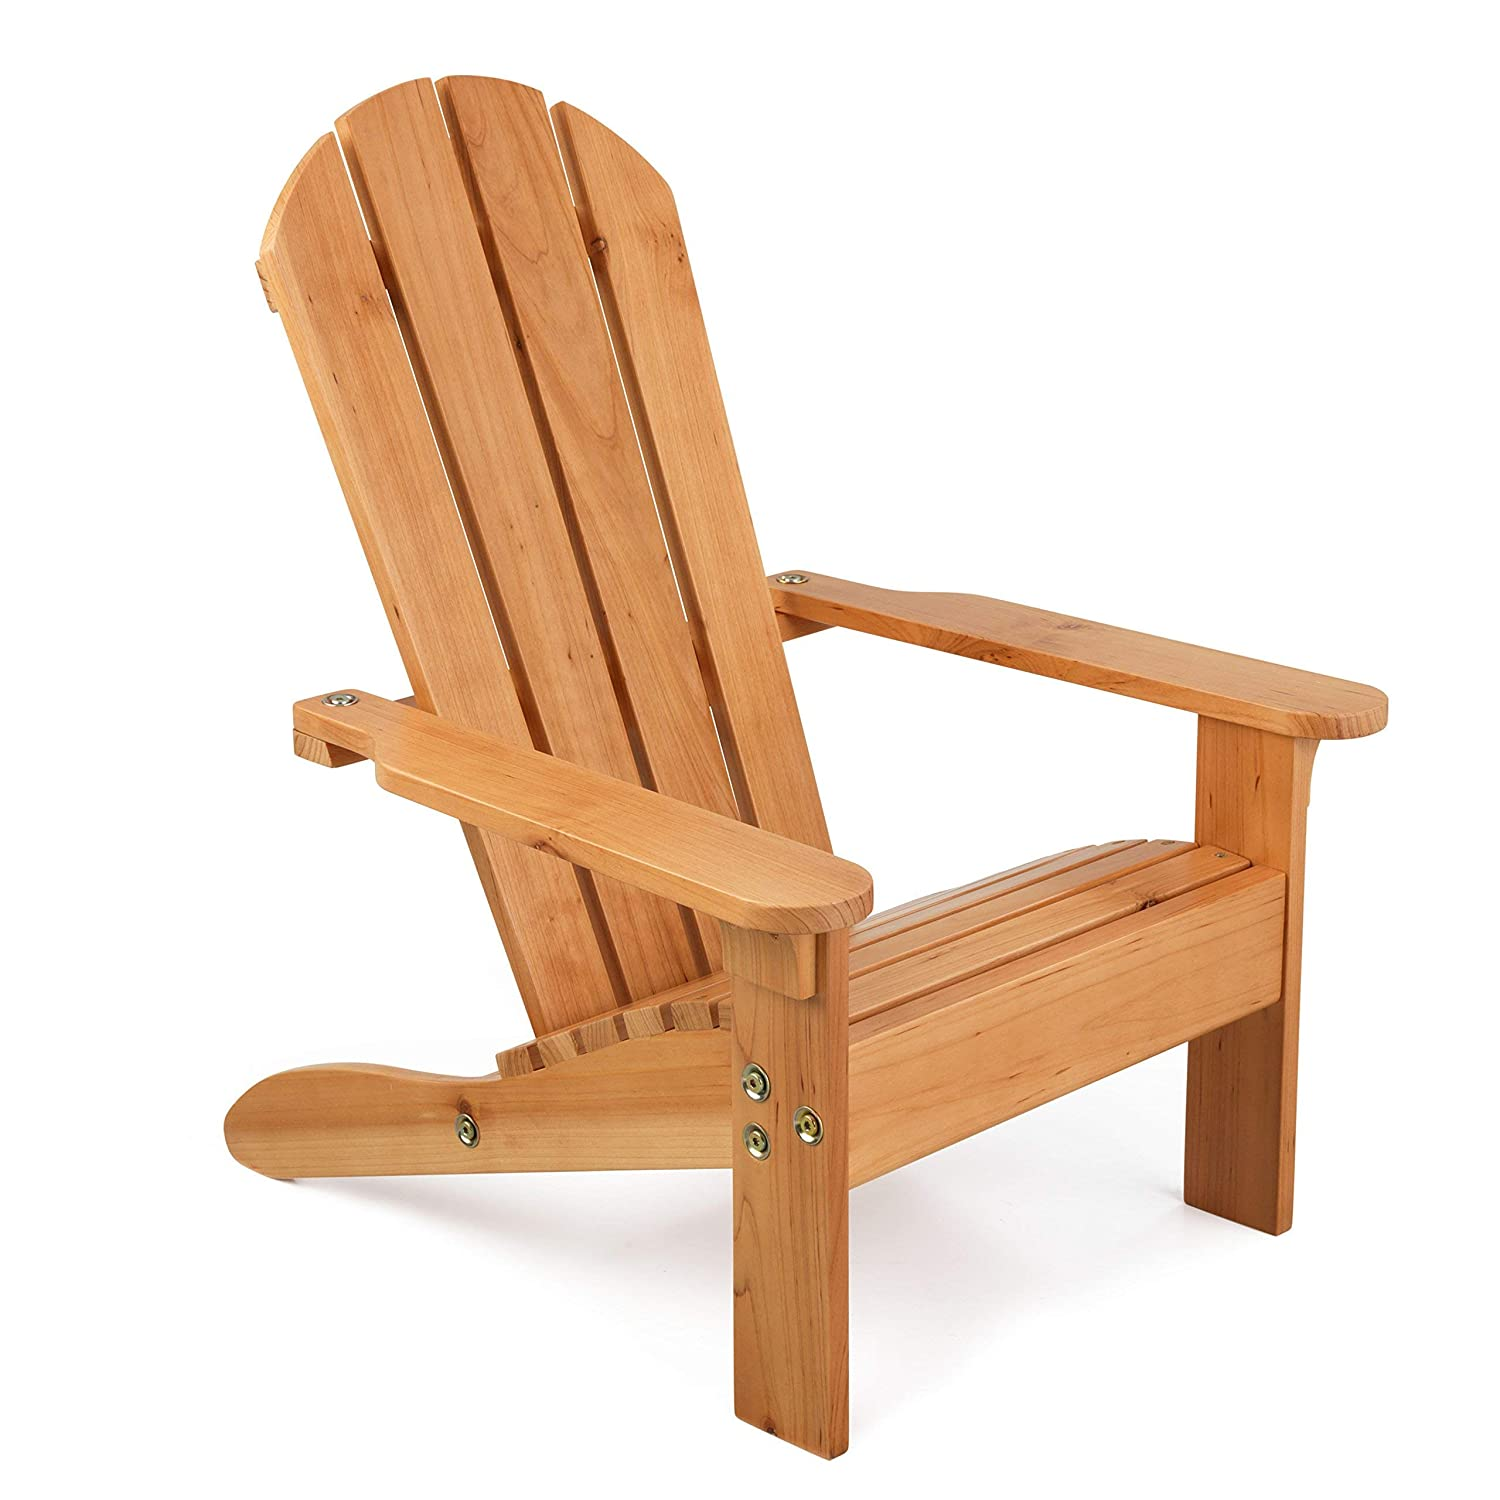 KidKraft Wooden Adirondack Chair, Children's Outdoor Patio Furniture, Weather-Resistant - Honey